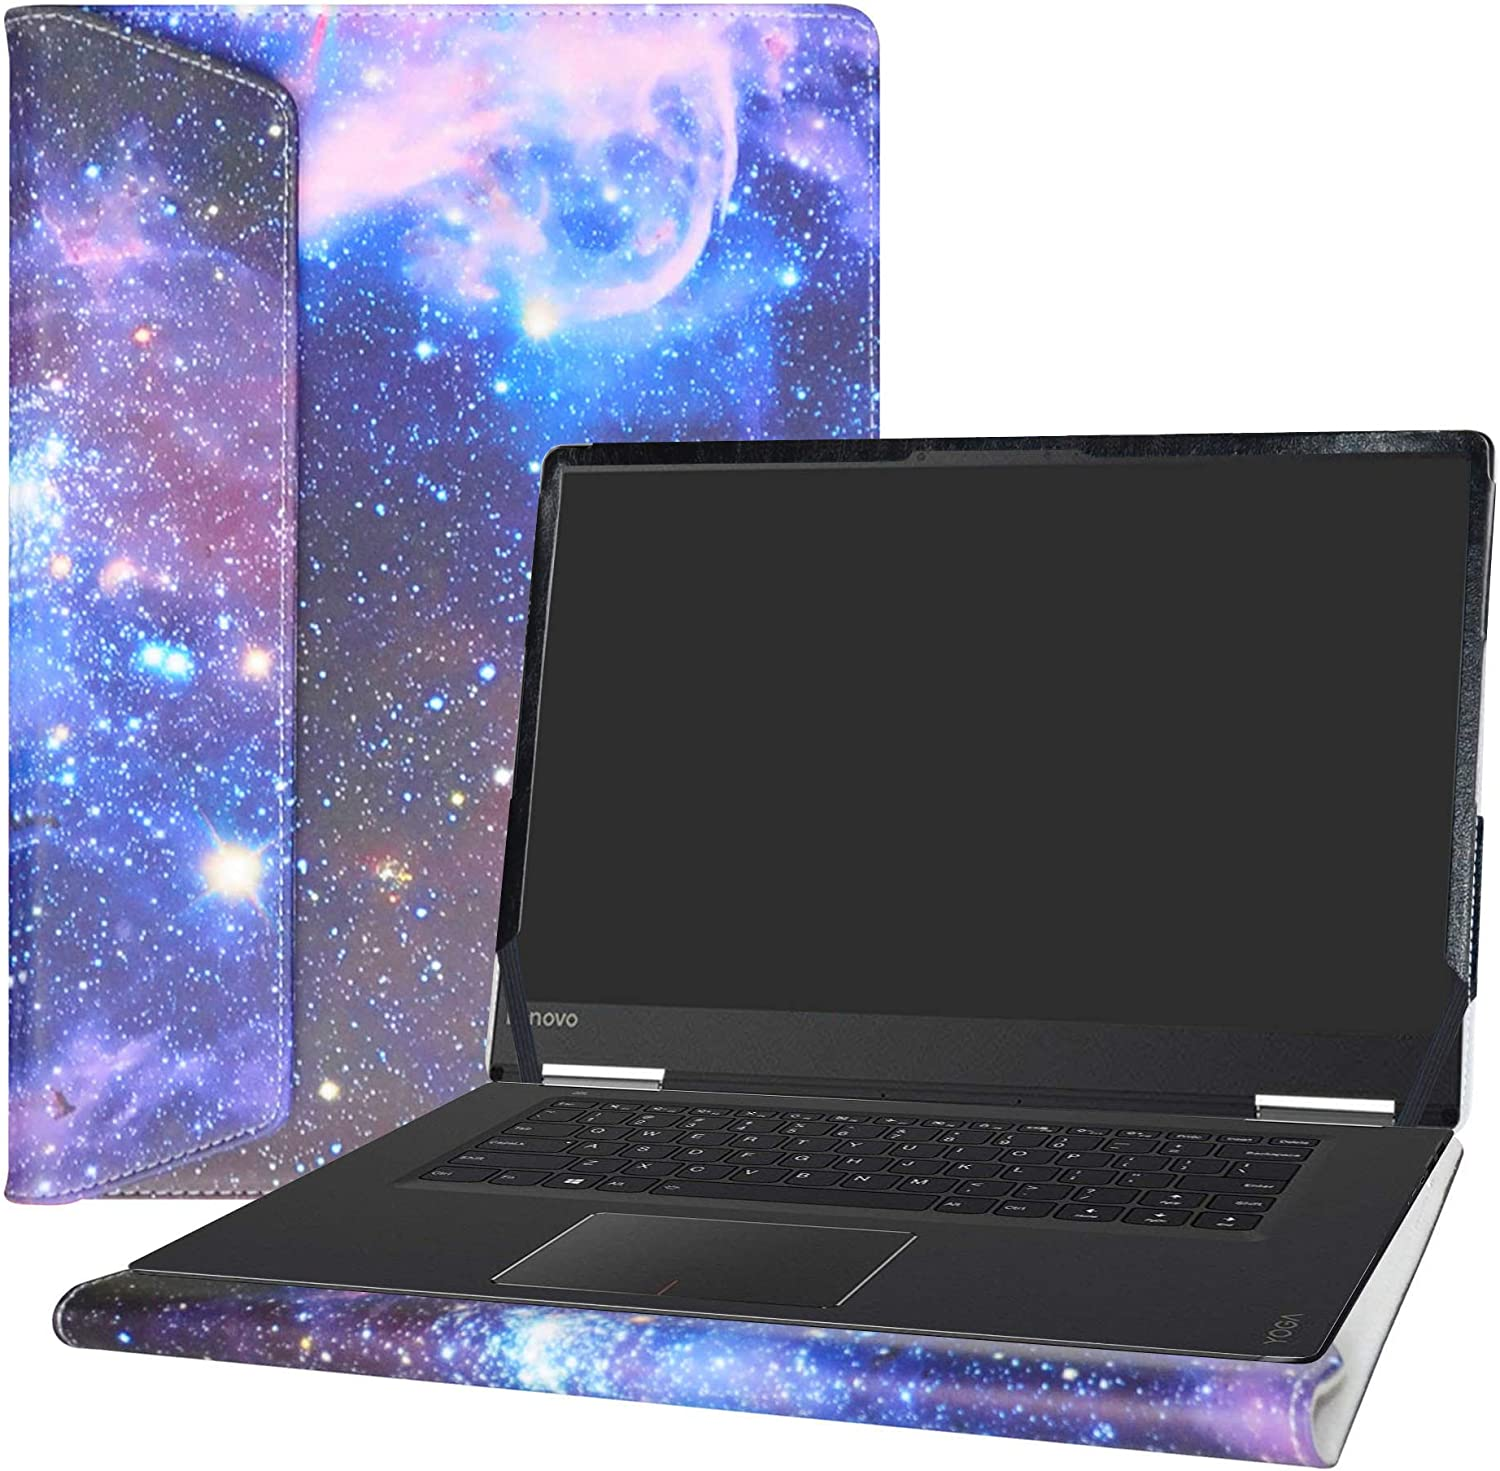 "Alapmk Protective Case Cover for 15.6"" Lenovo Yoga 710 15 710-15IKB/IdeaPad 720S 15 720S-15IKB & ACER Swift 3 15 SF315-52 Laptop(Note:Not fit Yoga 730 720/IdeaPad 710s/SWIFT 3 SF315-51),Galaxy"